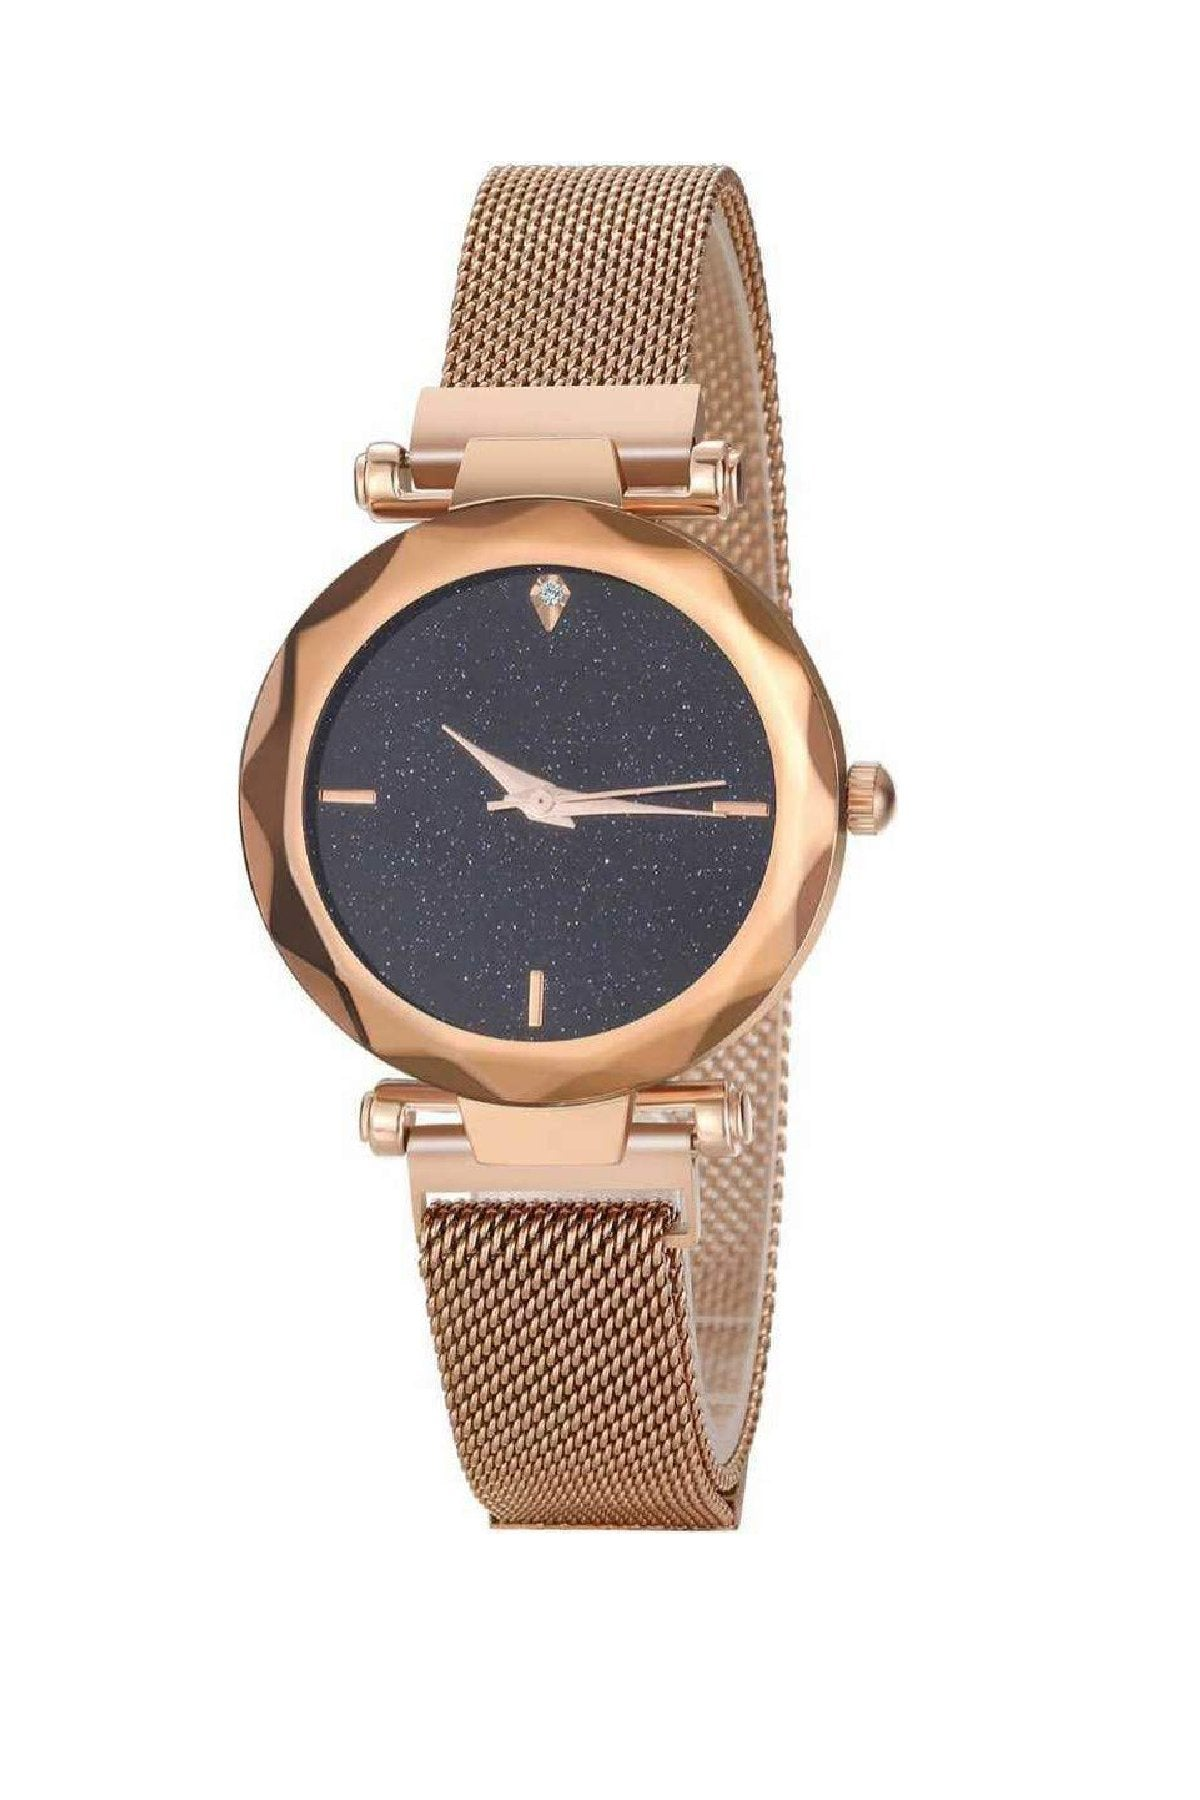 Girl Golden Magnet Watch -GA9001